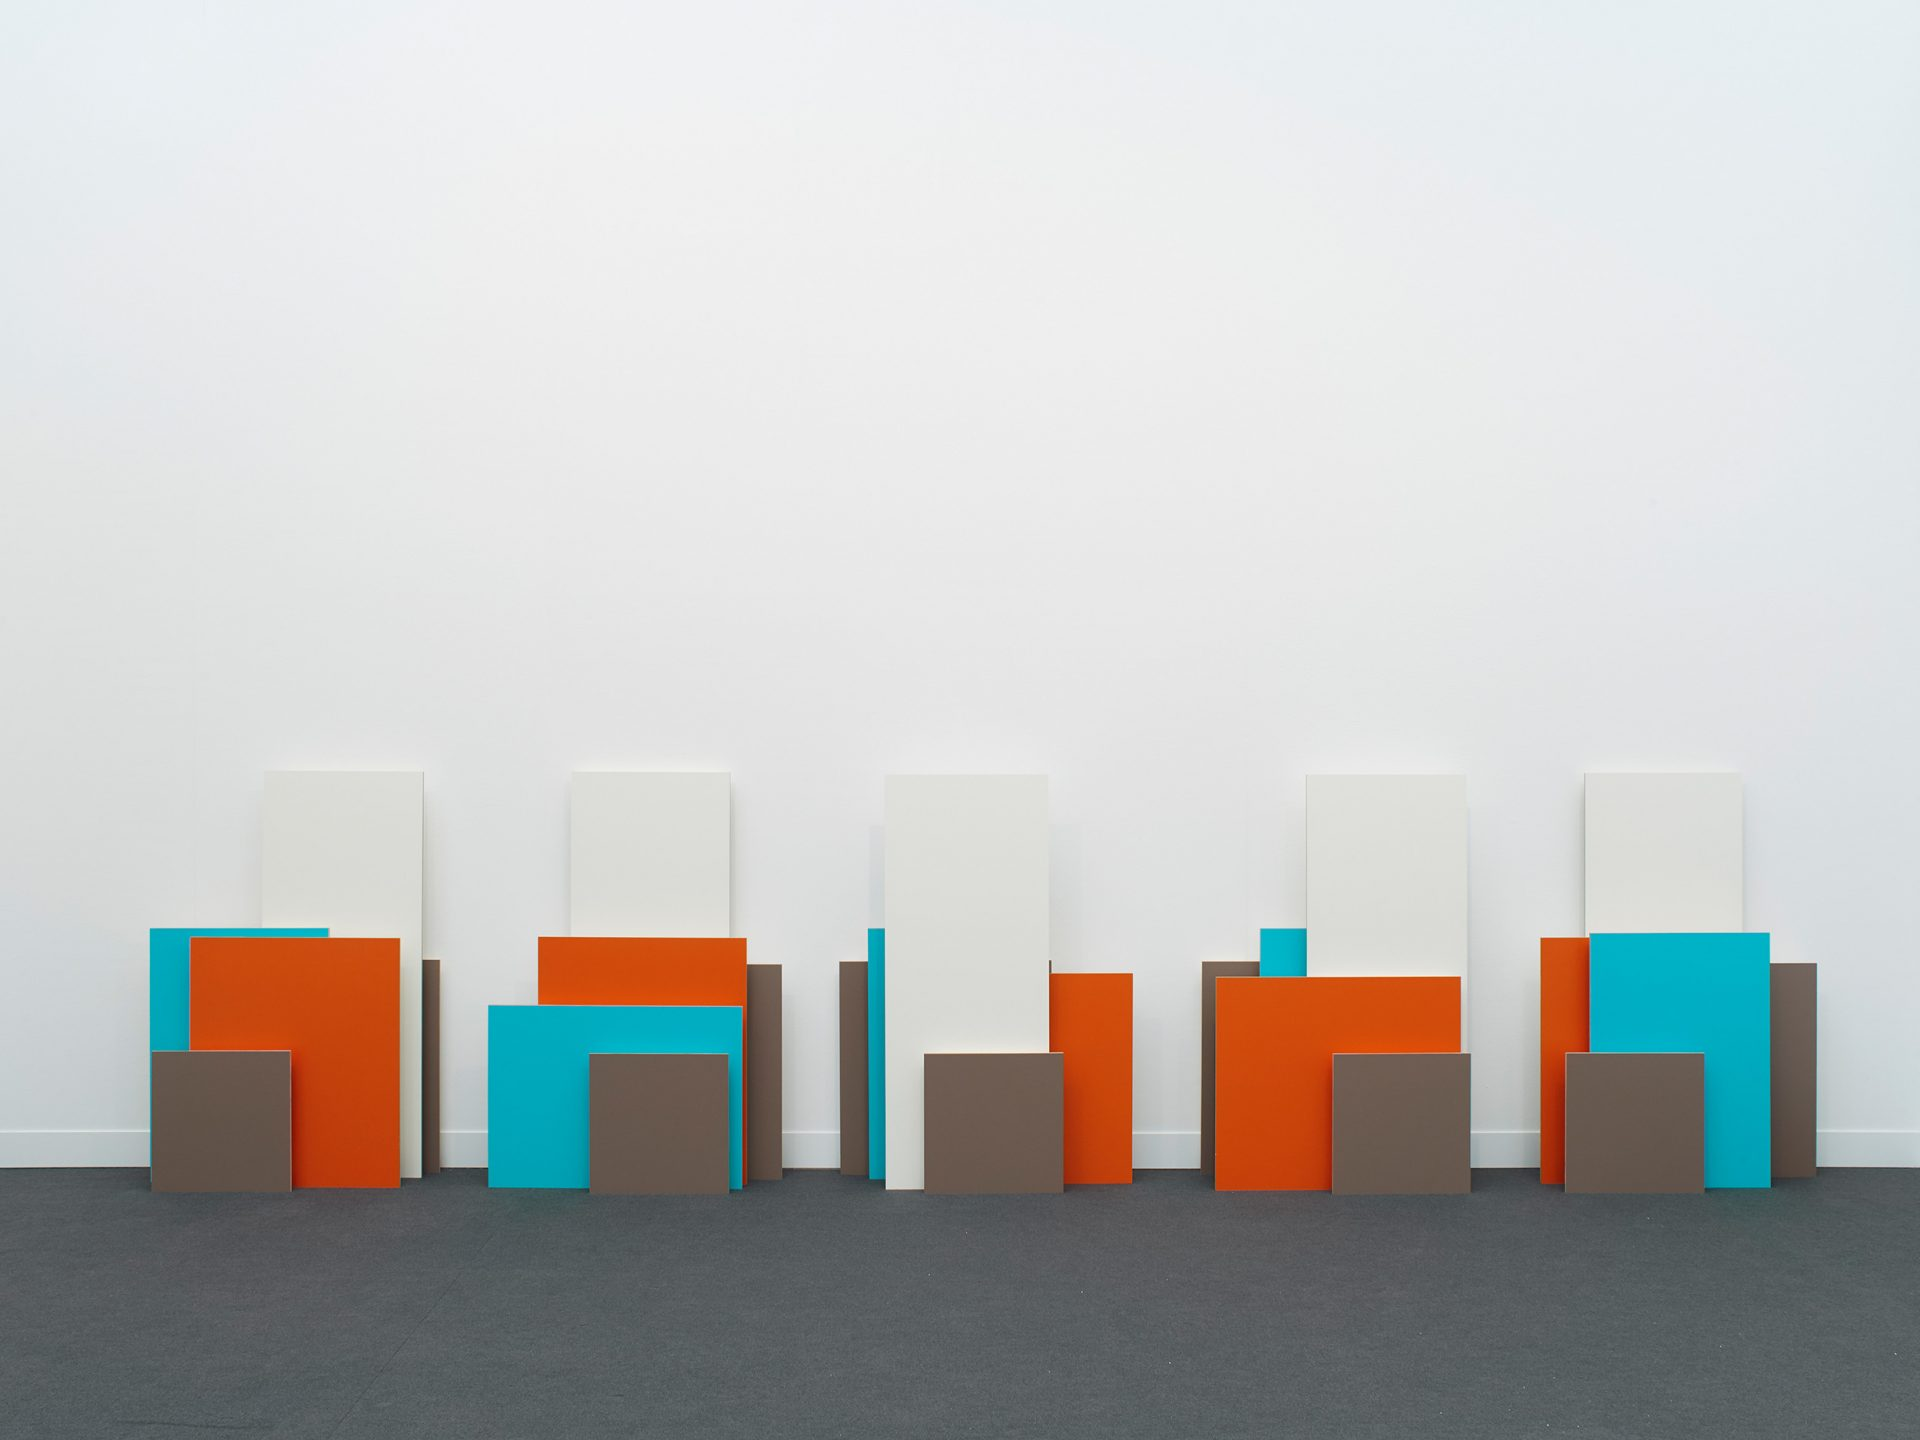 Anne Tallentire in 'IMMA 30 Setting Out', Irish Museum of Modern Art, 25 May – 26 September 2021